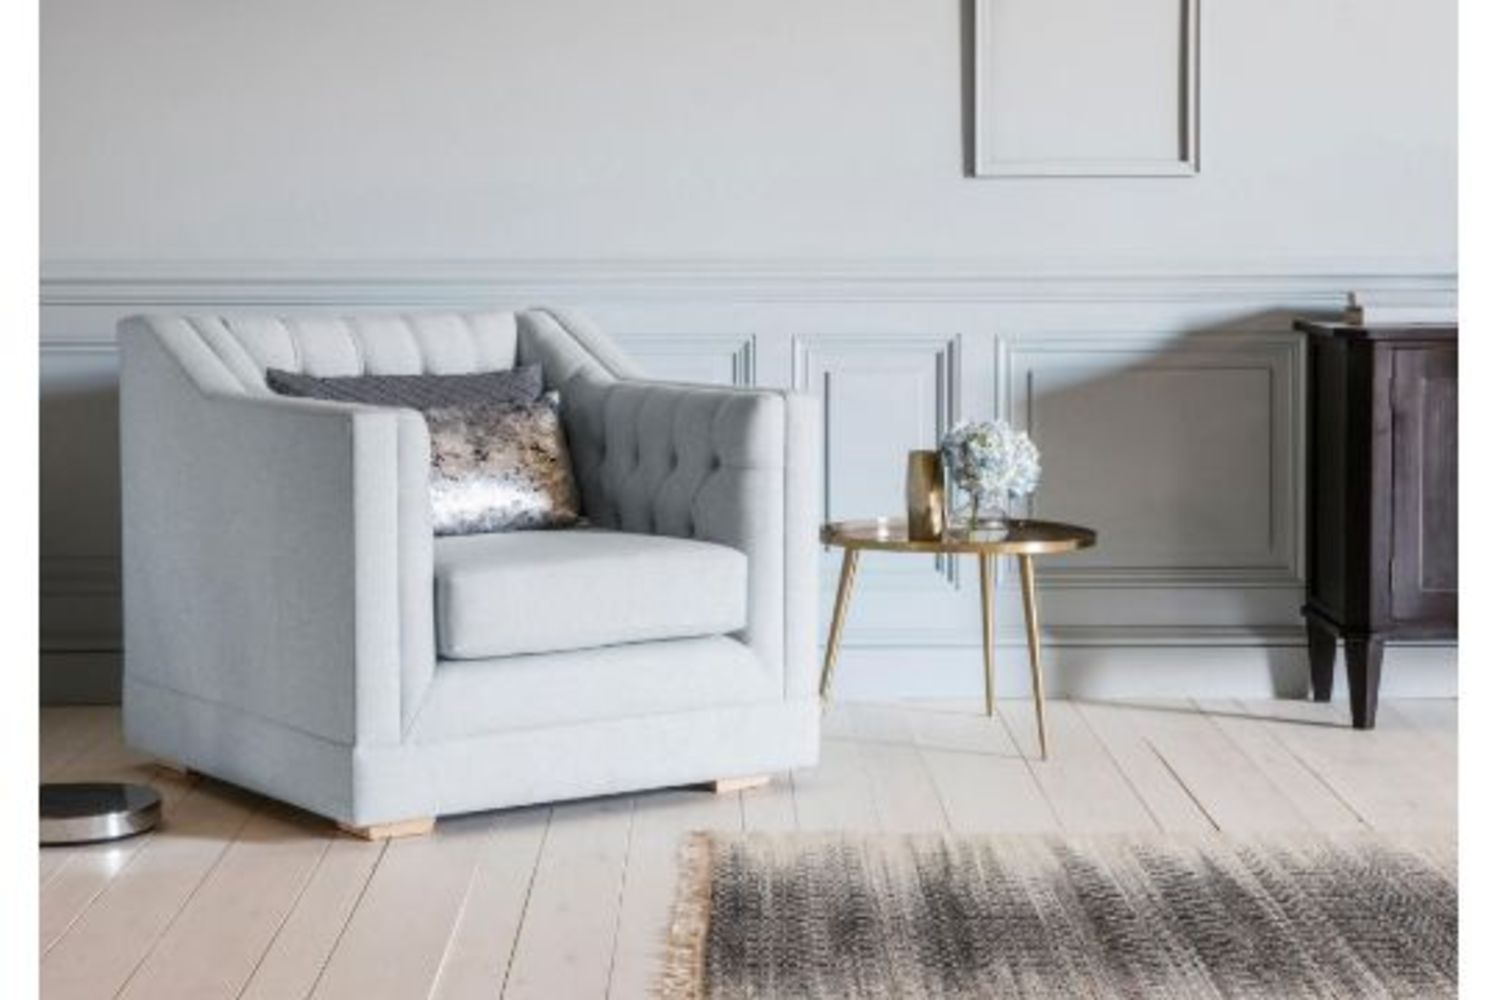 The Christmas Luxury Interior Furniture Collection - Delivery by Christmas Guaranteed